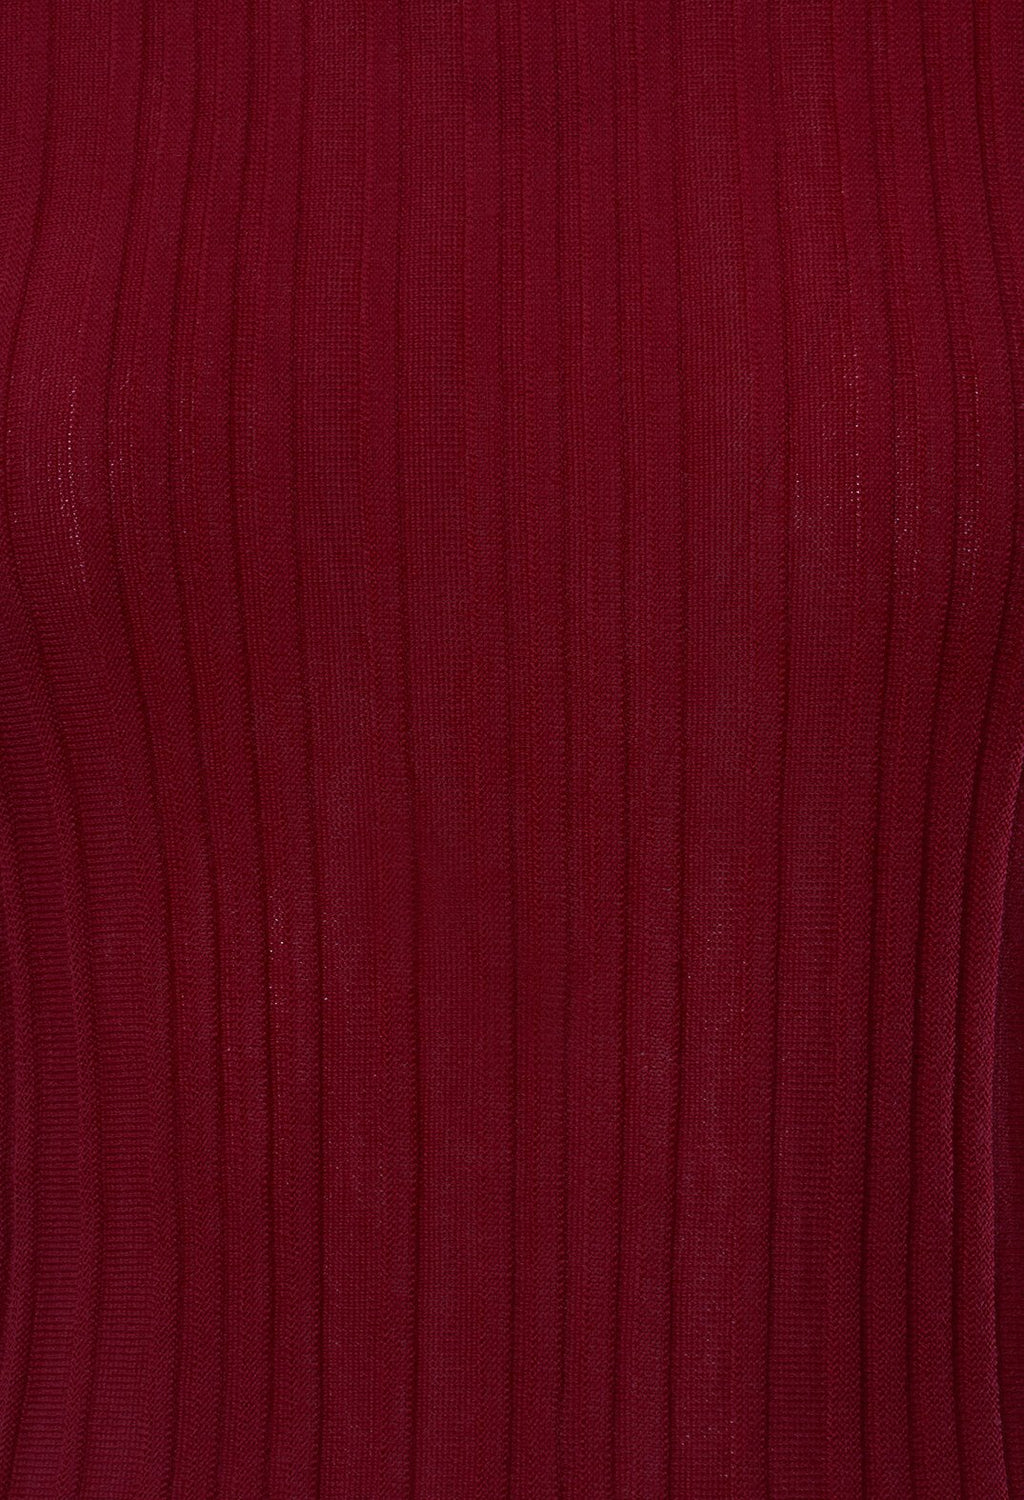 Ribbed Jumper in Fayalite Coral